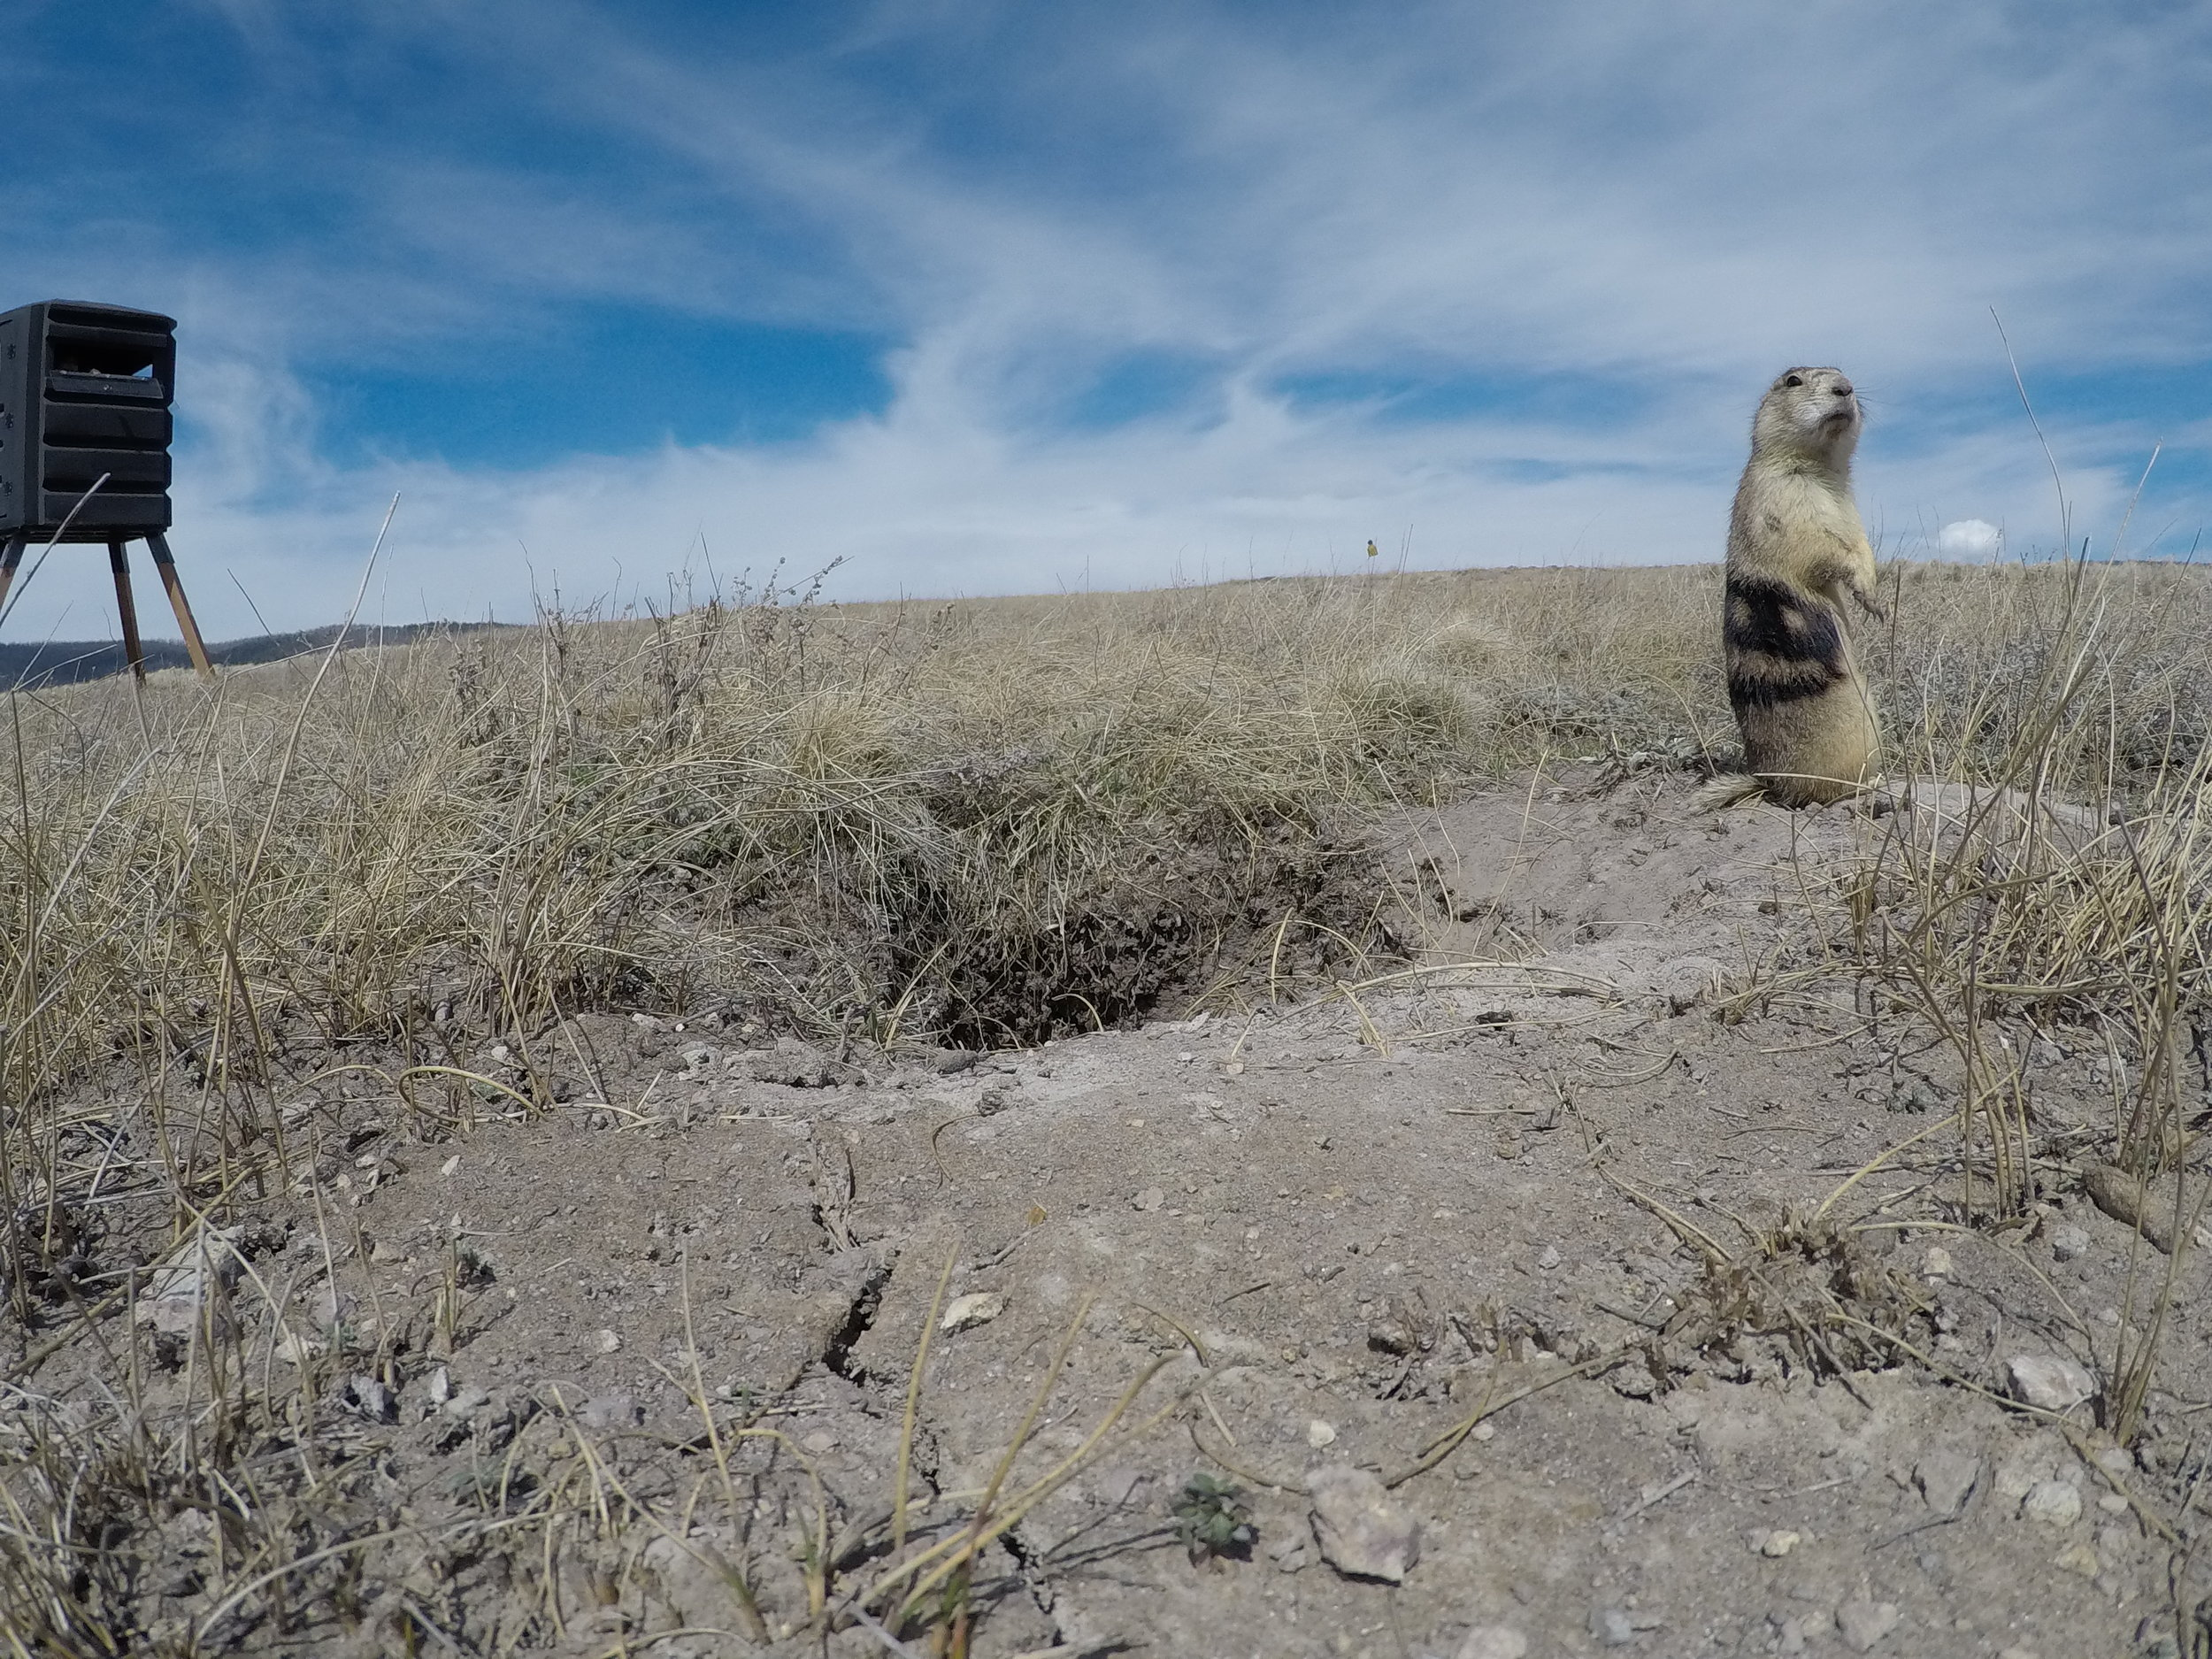 A closeup shot of a prairie dog at his burrow shows an observation blind in the near distance.  ©MRR 2017